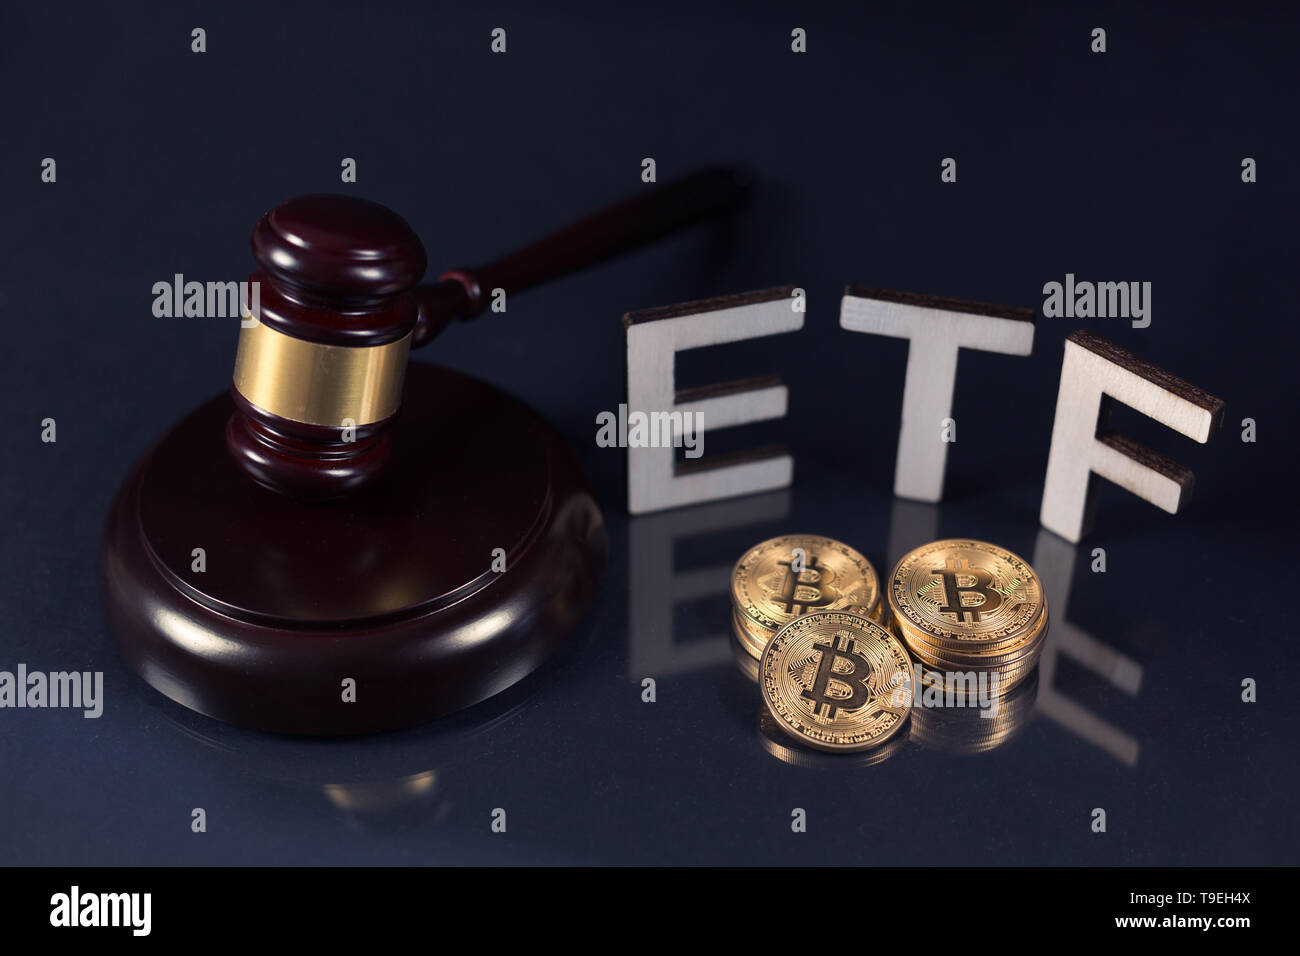 Bitcoin coins with ETF text and gavel put on dark background, Concept of the approval of Exchange Traded Fund. Stock Photo